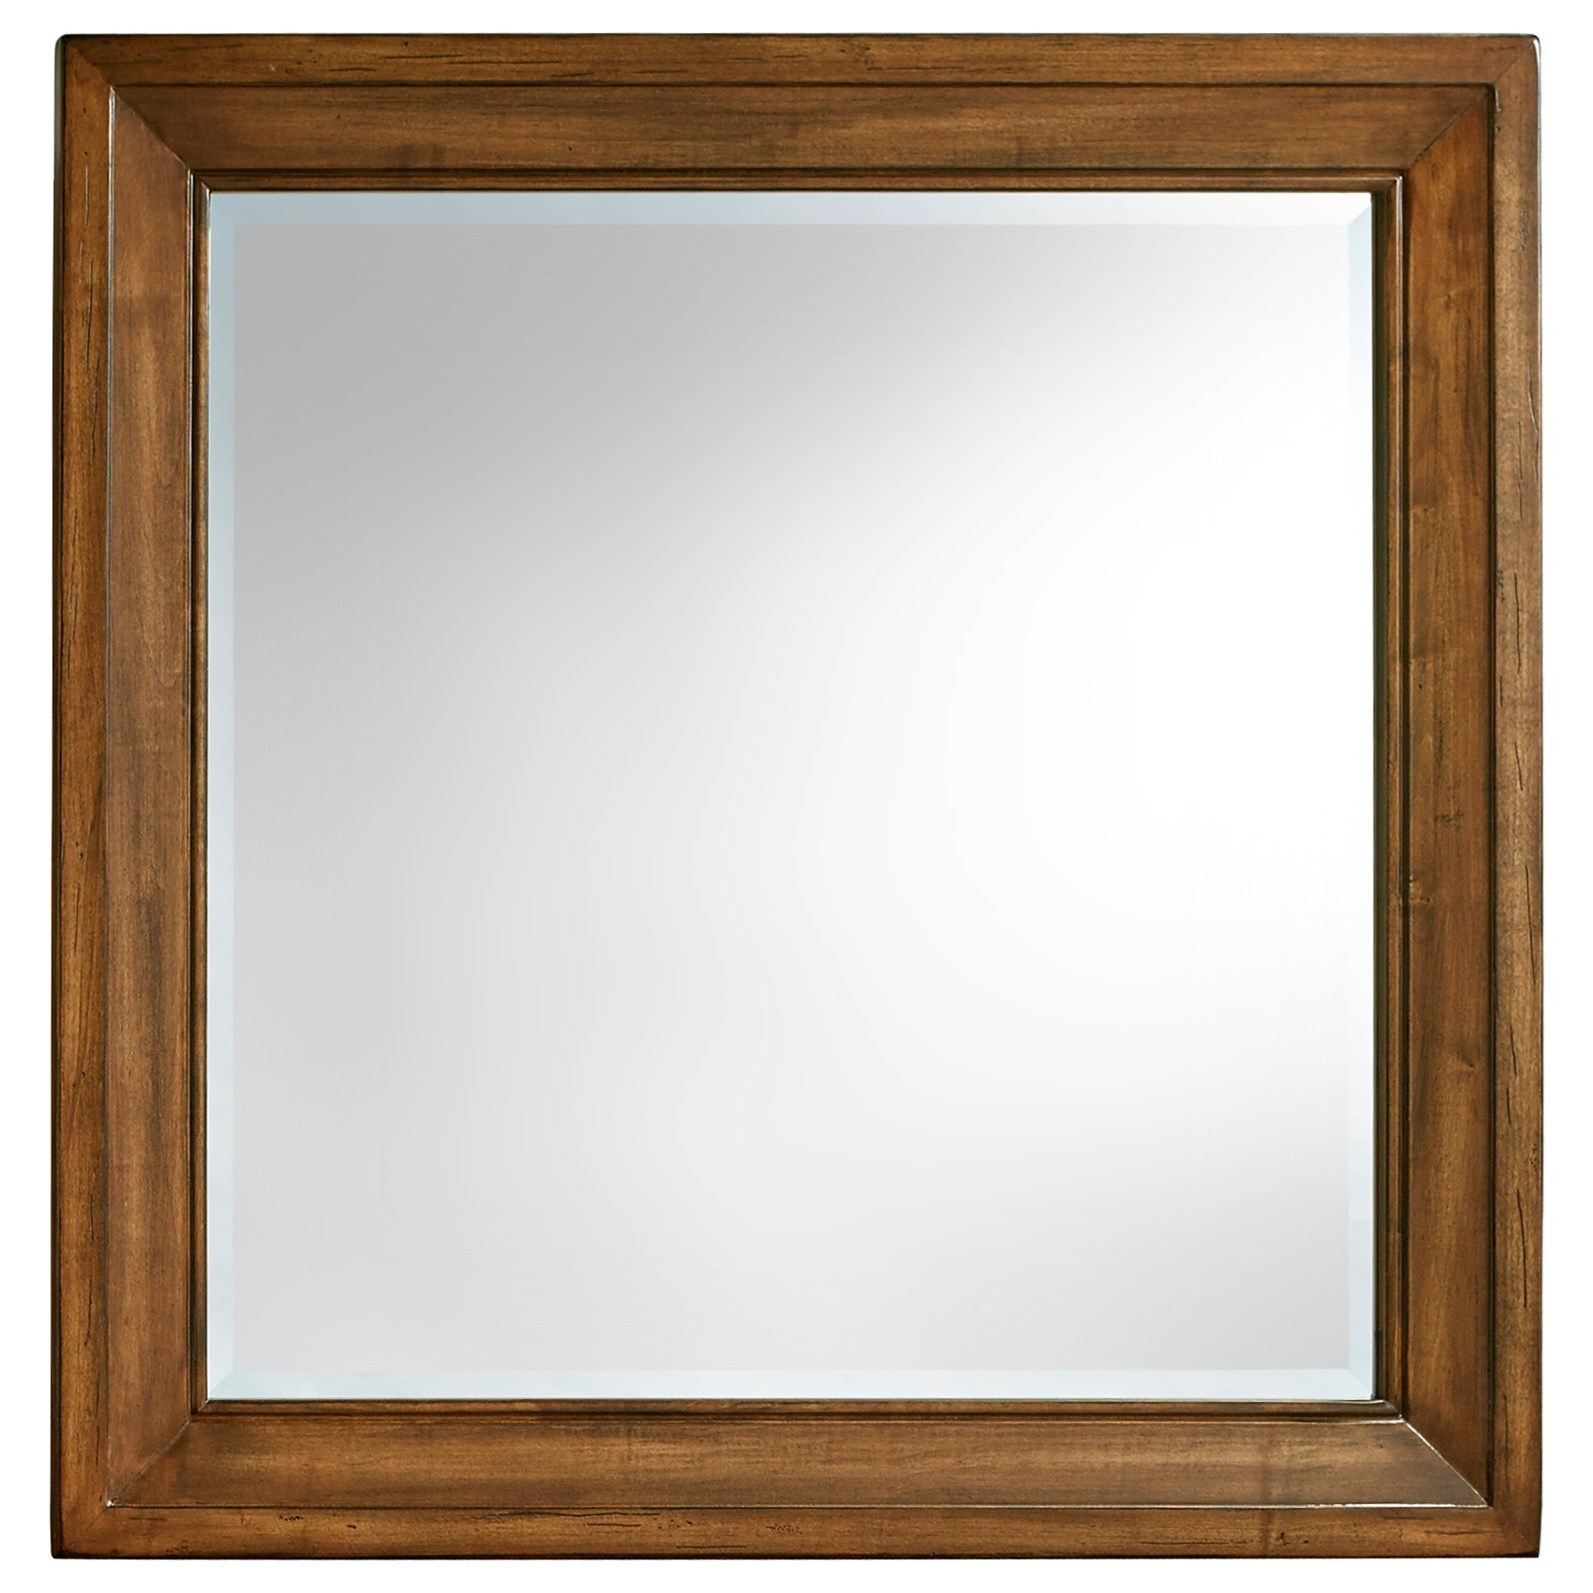 Artisan & Post by Vaughan Bassett Maple Road Landscape Mirror - Beveled glass - Item Number: 118-446